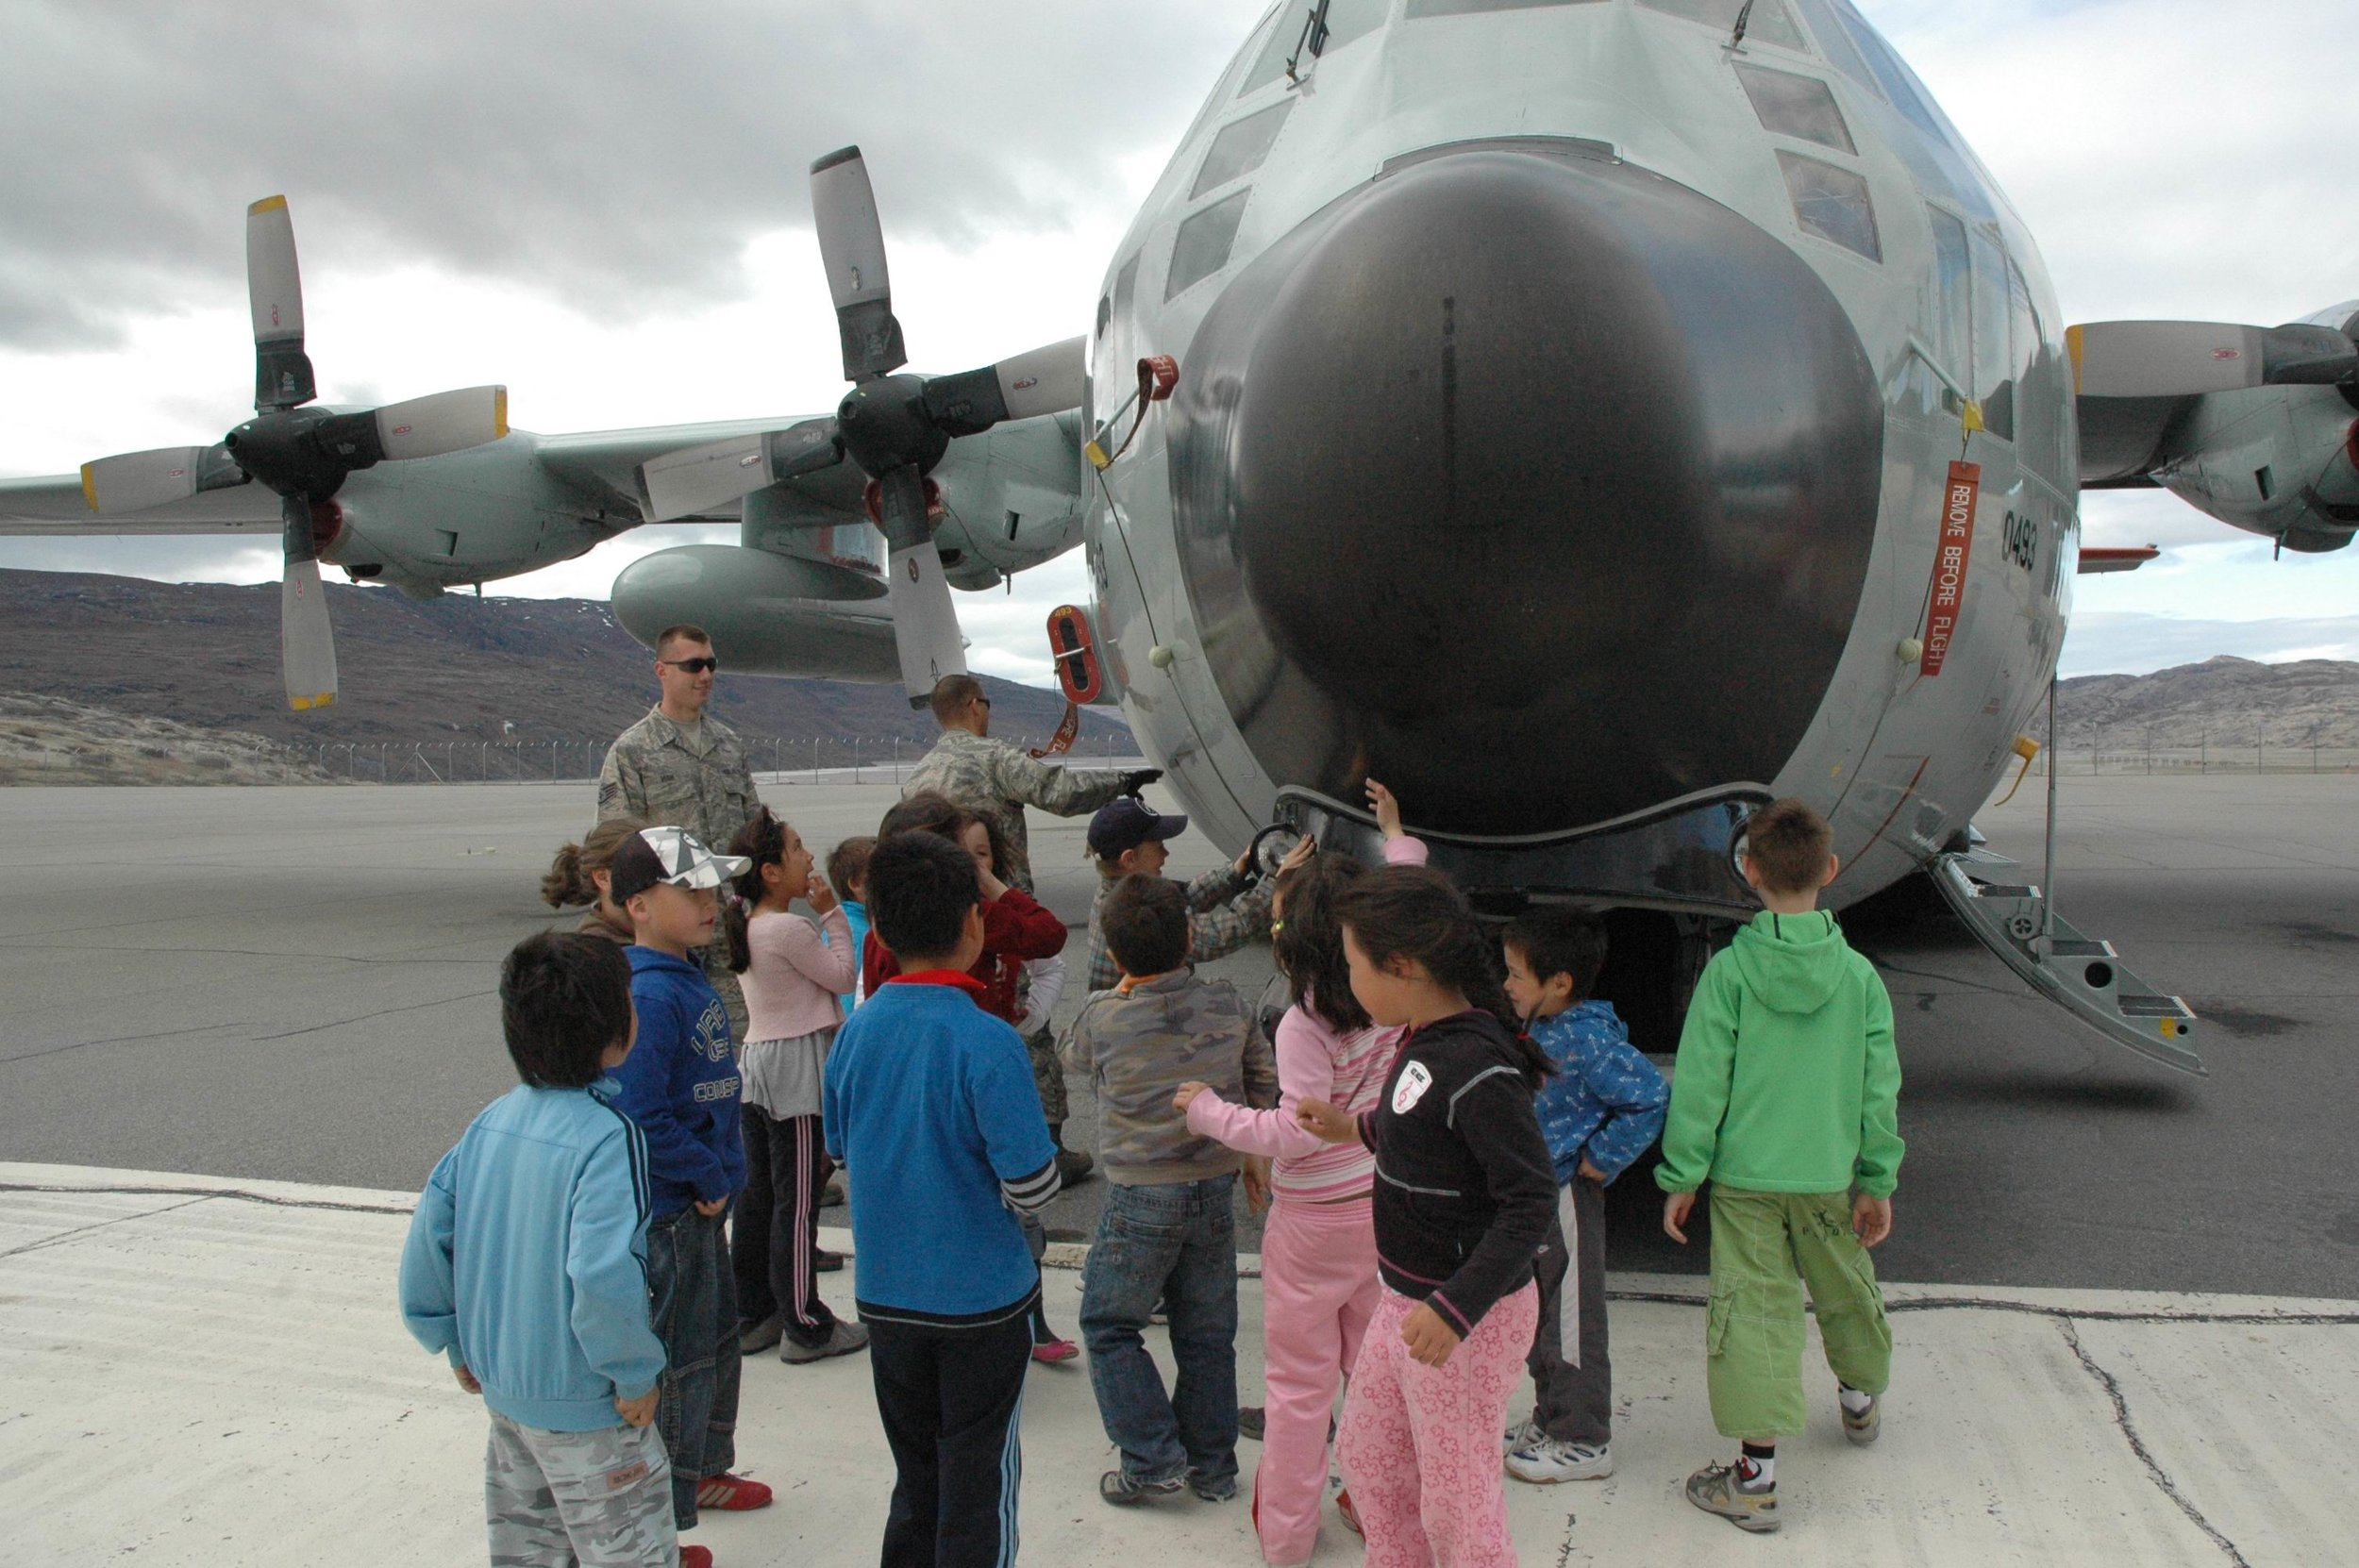 Even the C-130 appears to be having a great time! Photos: Lt Col Matt LeClair